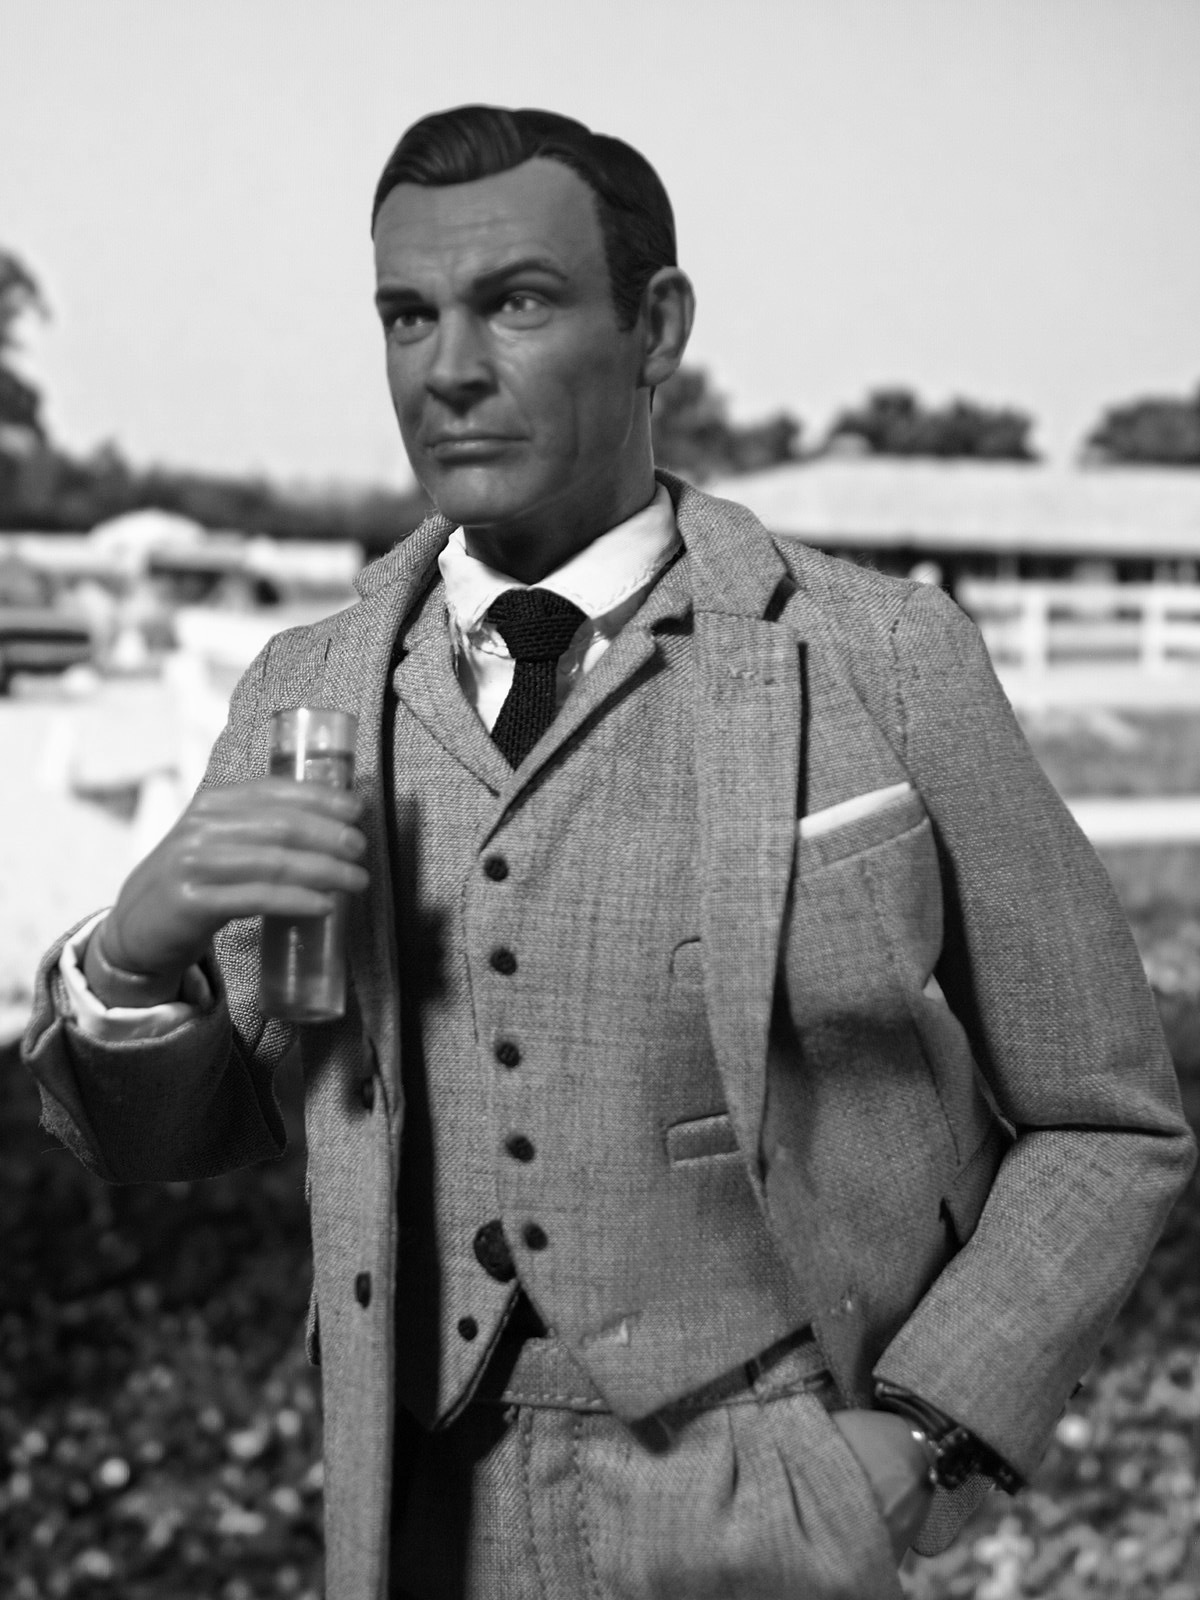 Welcome to Auric Stud, Mr. Bond! by Phil Dyner